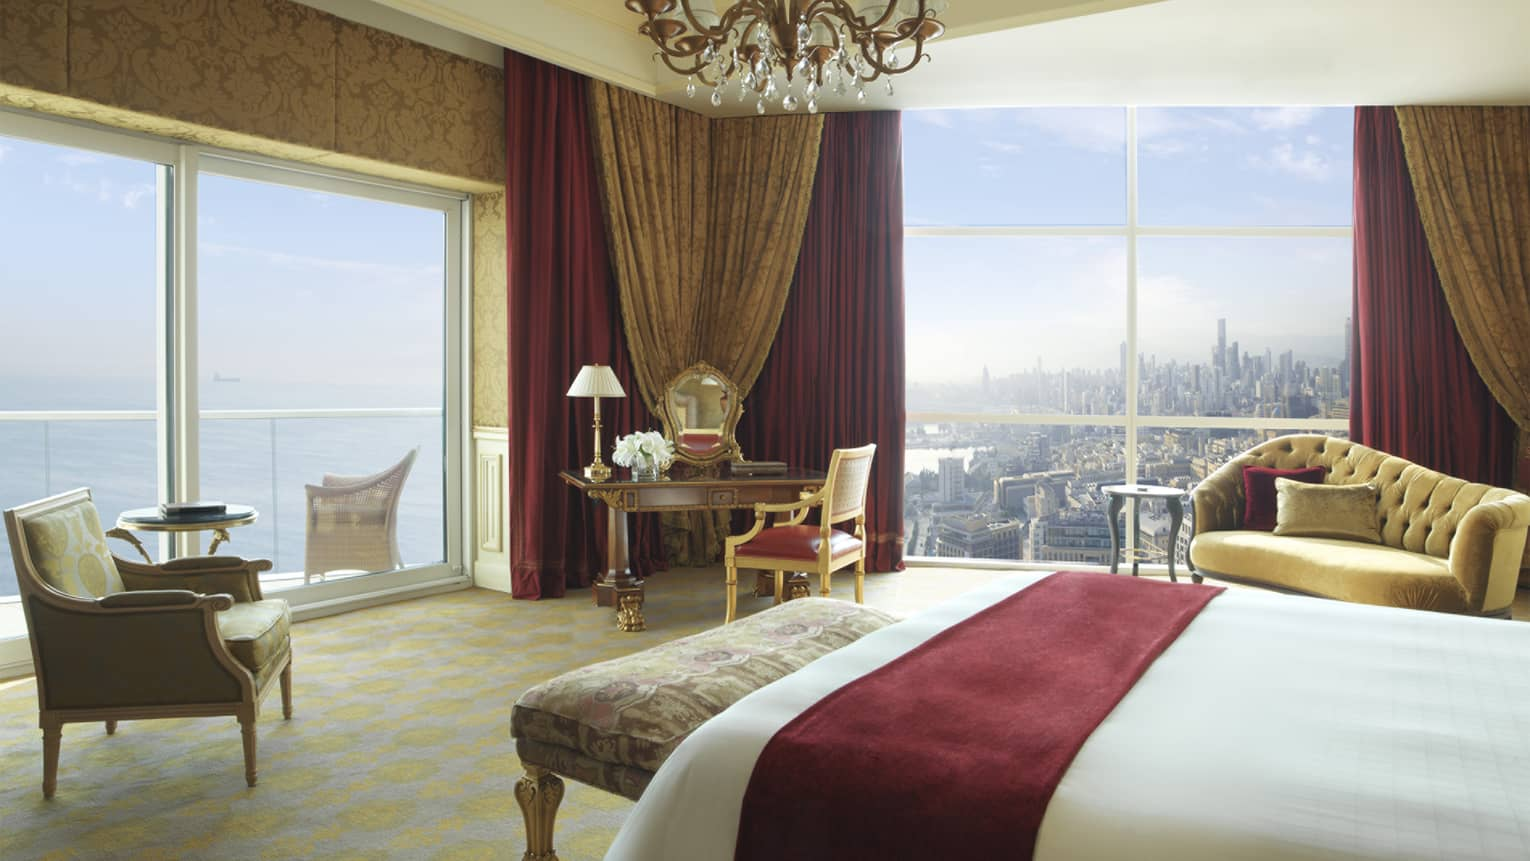 White bed with red suede sash, antique-style bench, green-and-gold leaf armchair, corner suite views of water and city